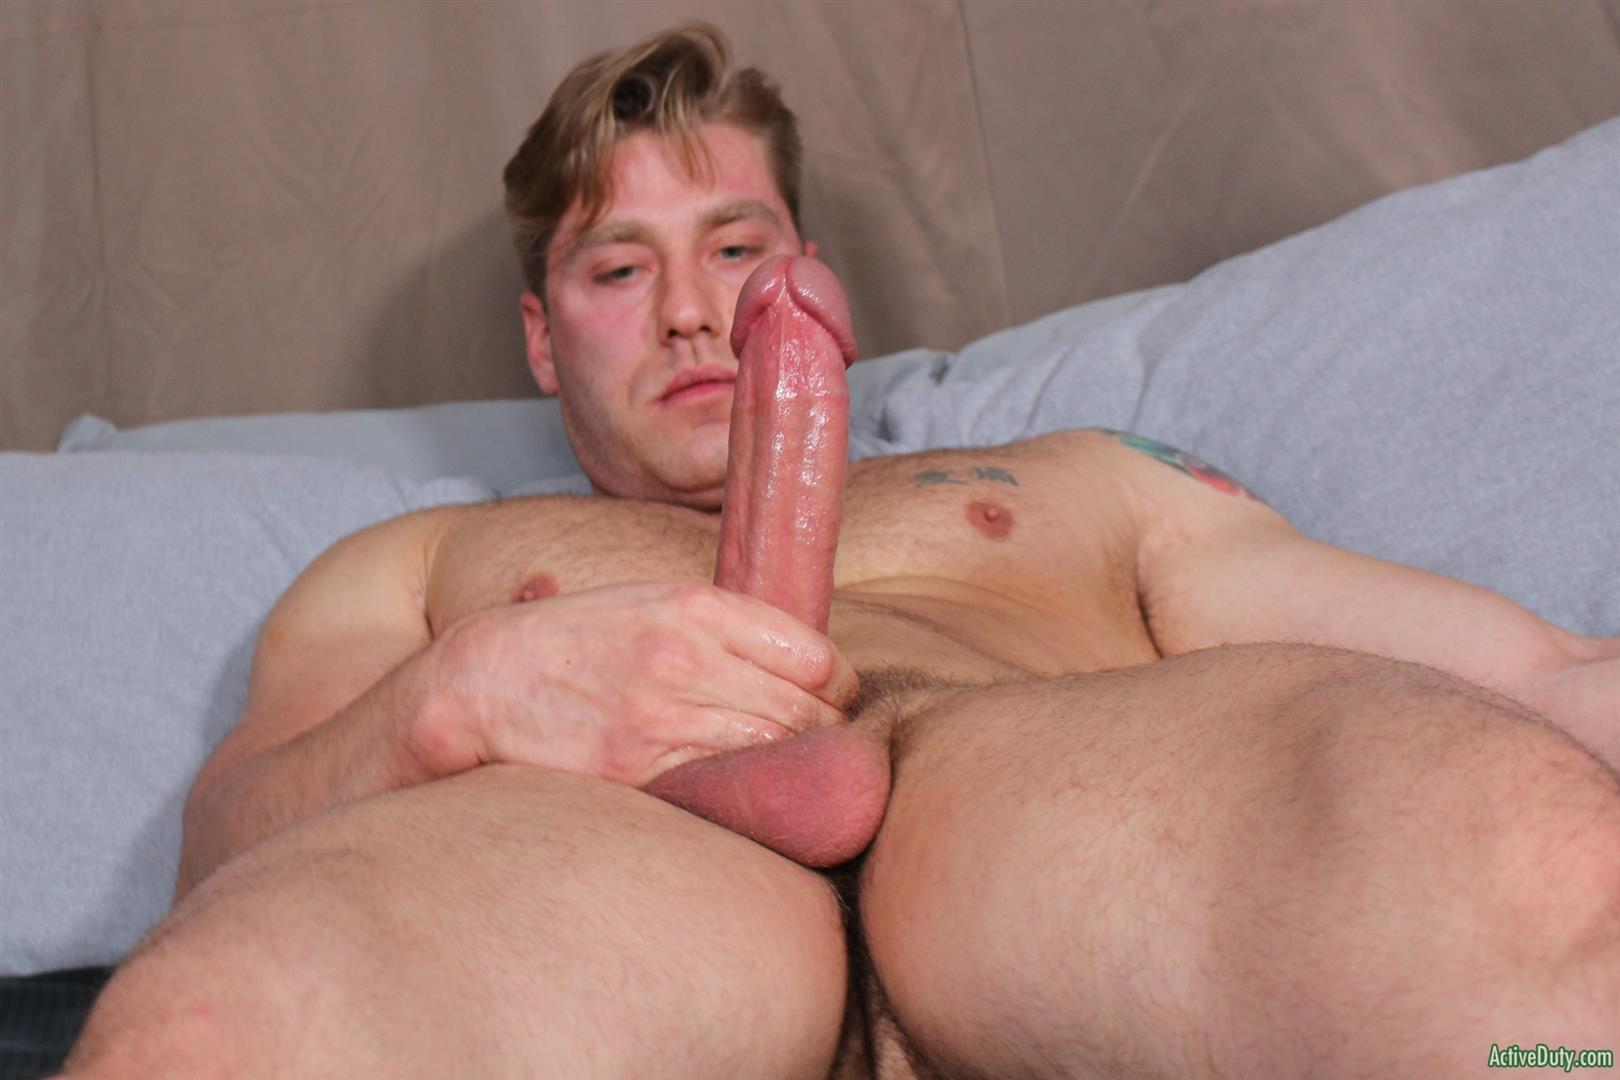 Active-Duty-John-Hawkins-Muscular-Air-Force-Guy-Big-Cock-Jerk-Off-Video-08 US Air Force Airman Strokes His Big Hard Cock